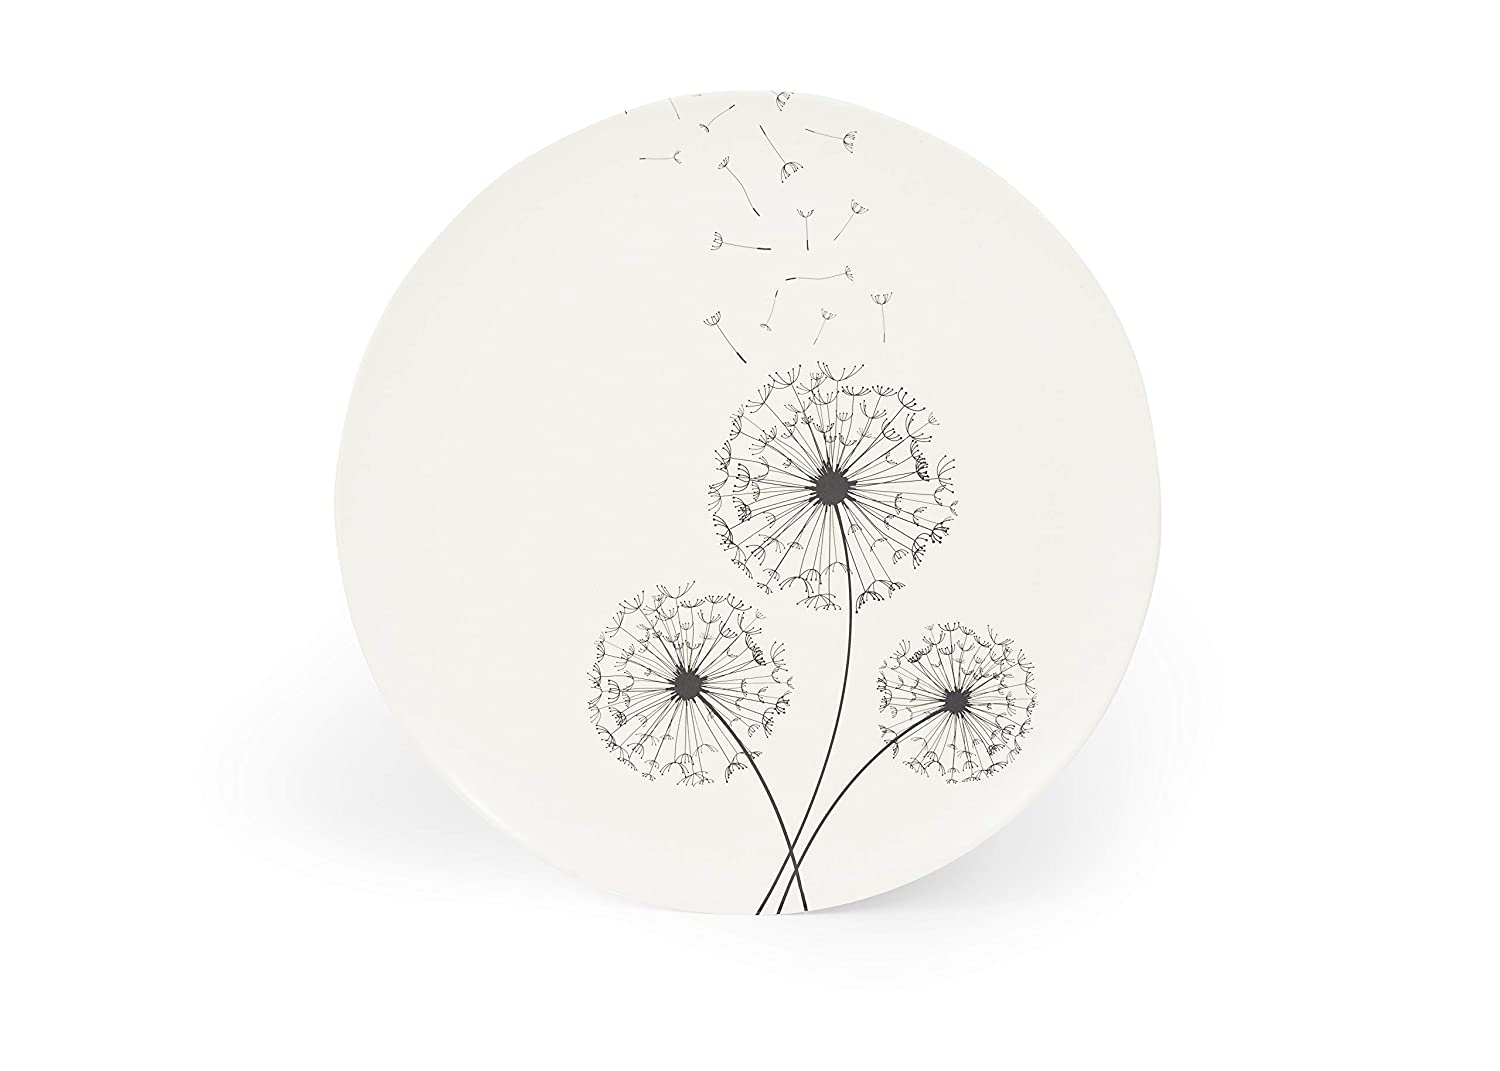 "Aquaterra Living Ecofriendly Dinner Plate Set with Dandelion Designs- Set of 6, 10"" indoor or outdoor plates"